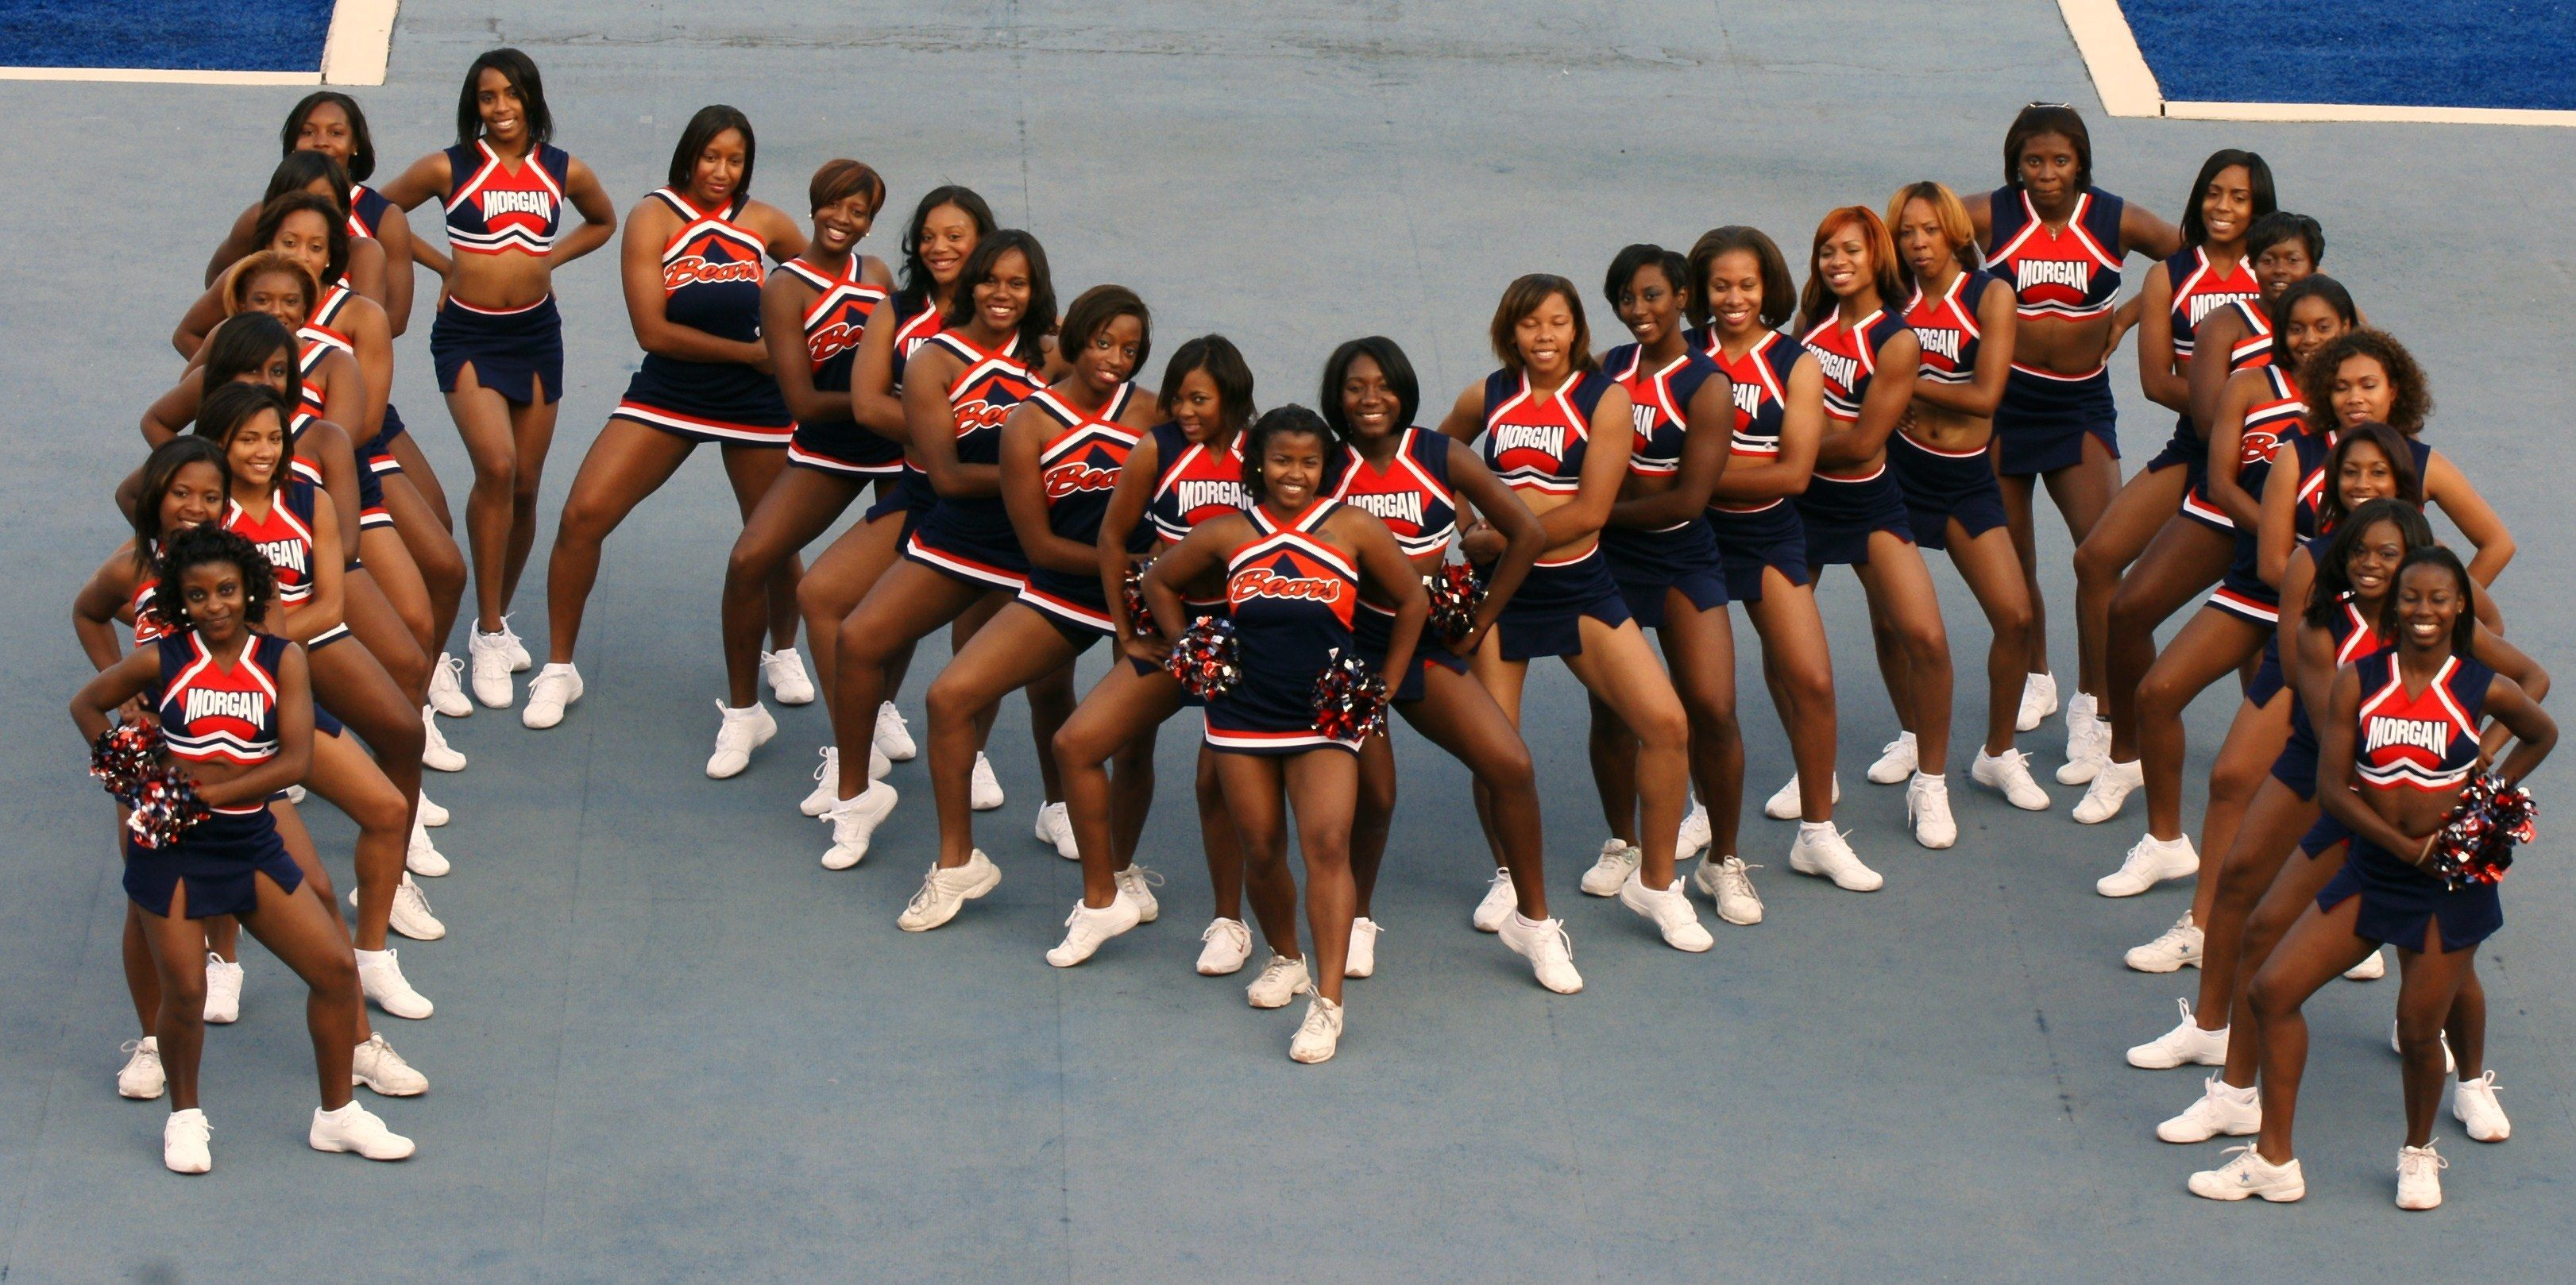 State 2011 Cheer MEAC Champions CHEER.SISTERS